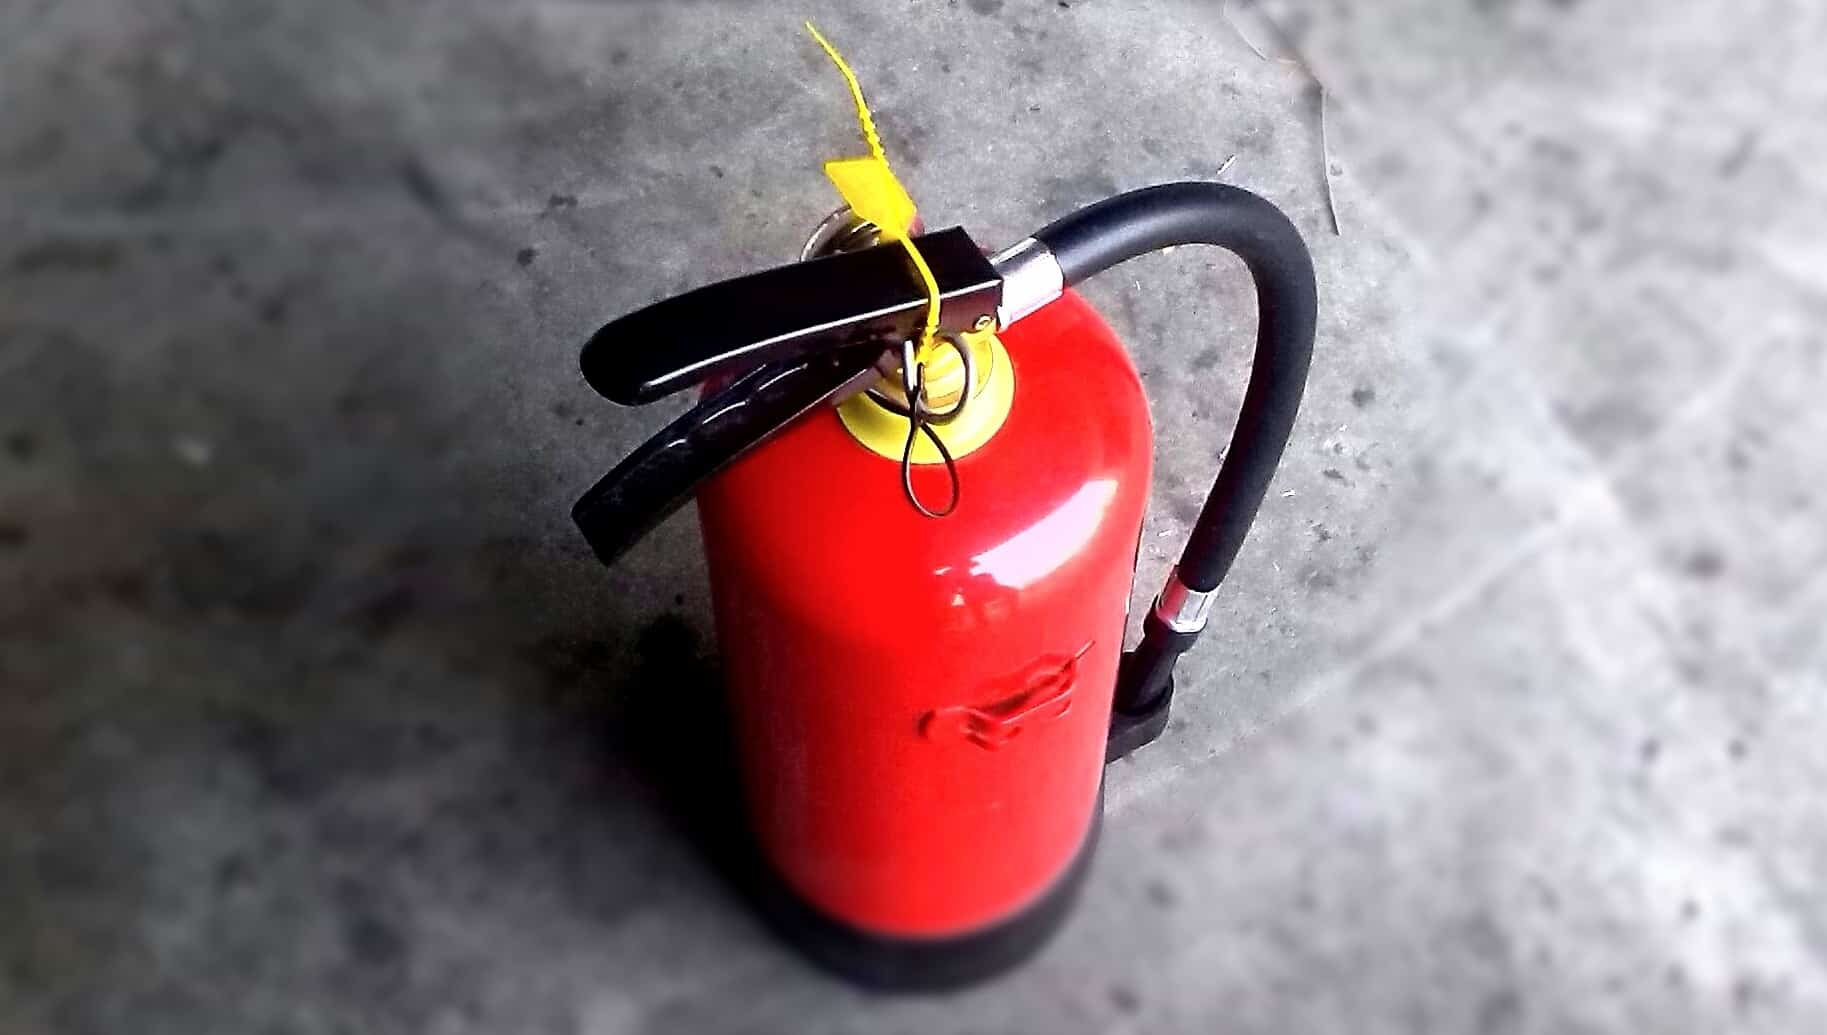 grill-checklist-bbq-party-14-fire-extinguisher